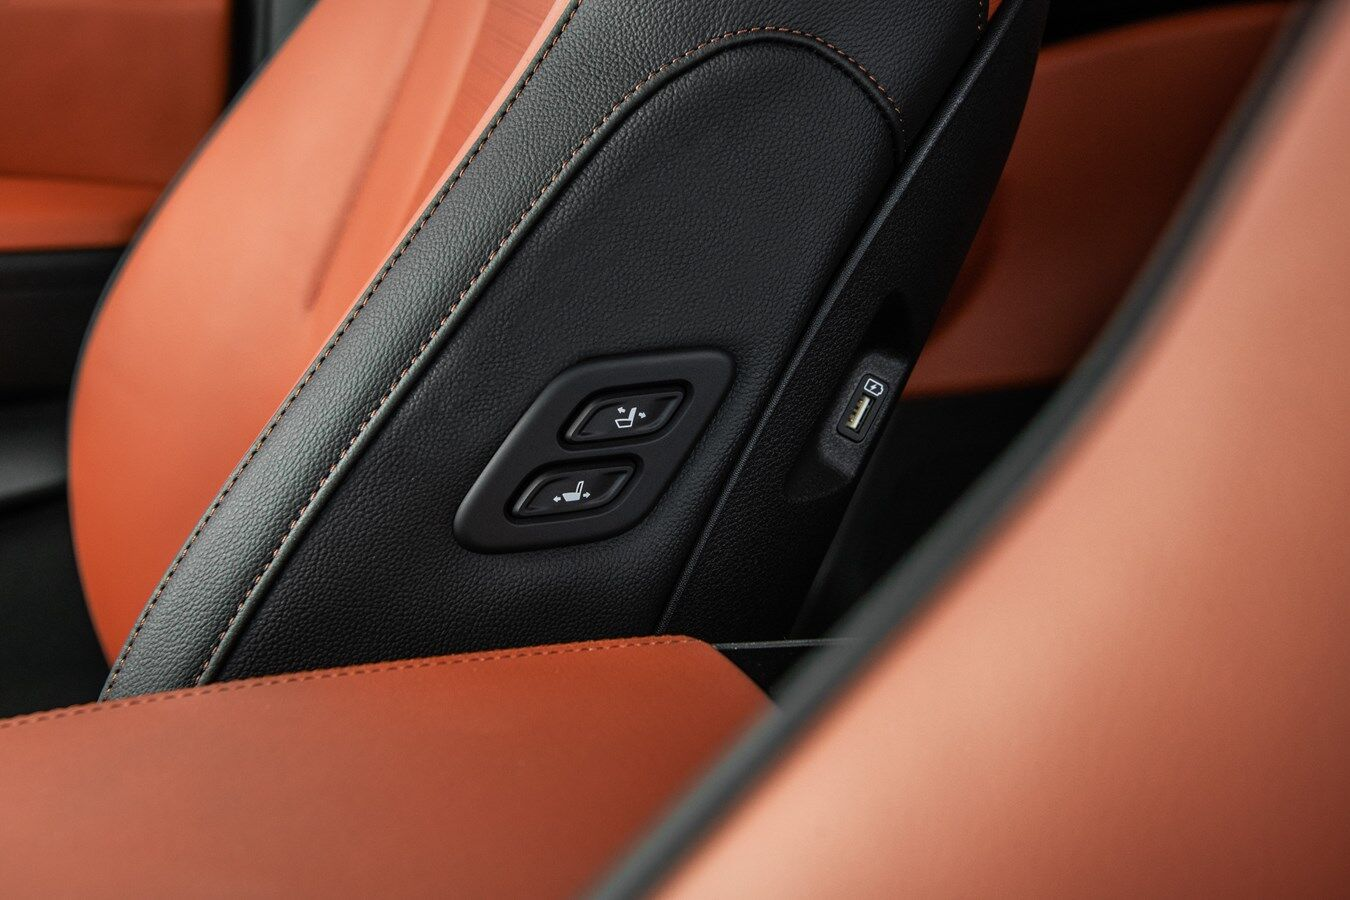 Seat buttons